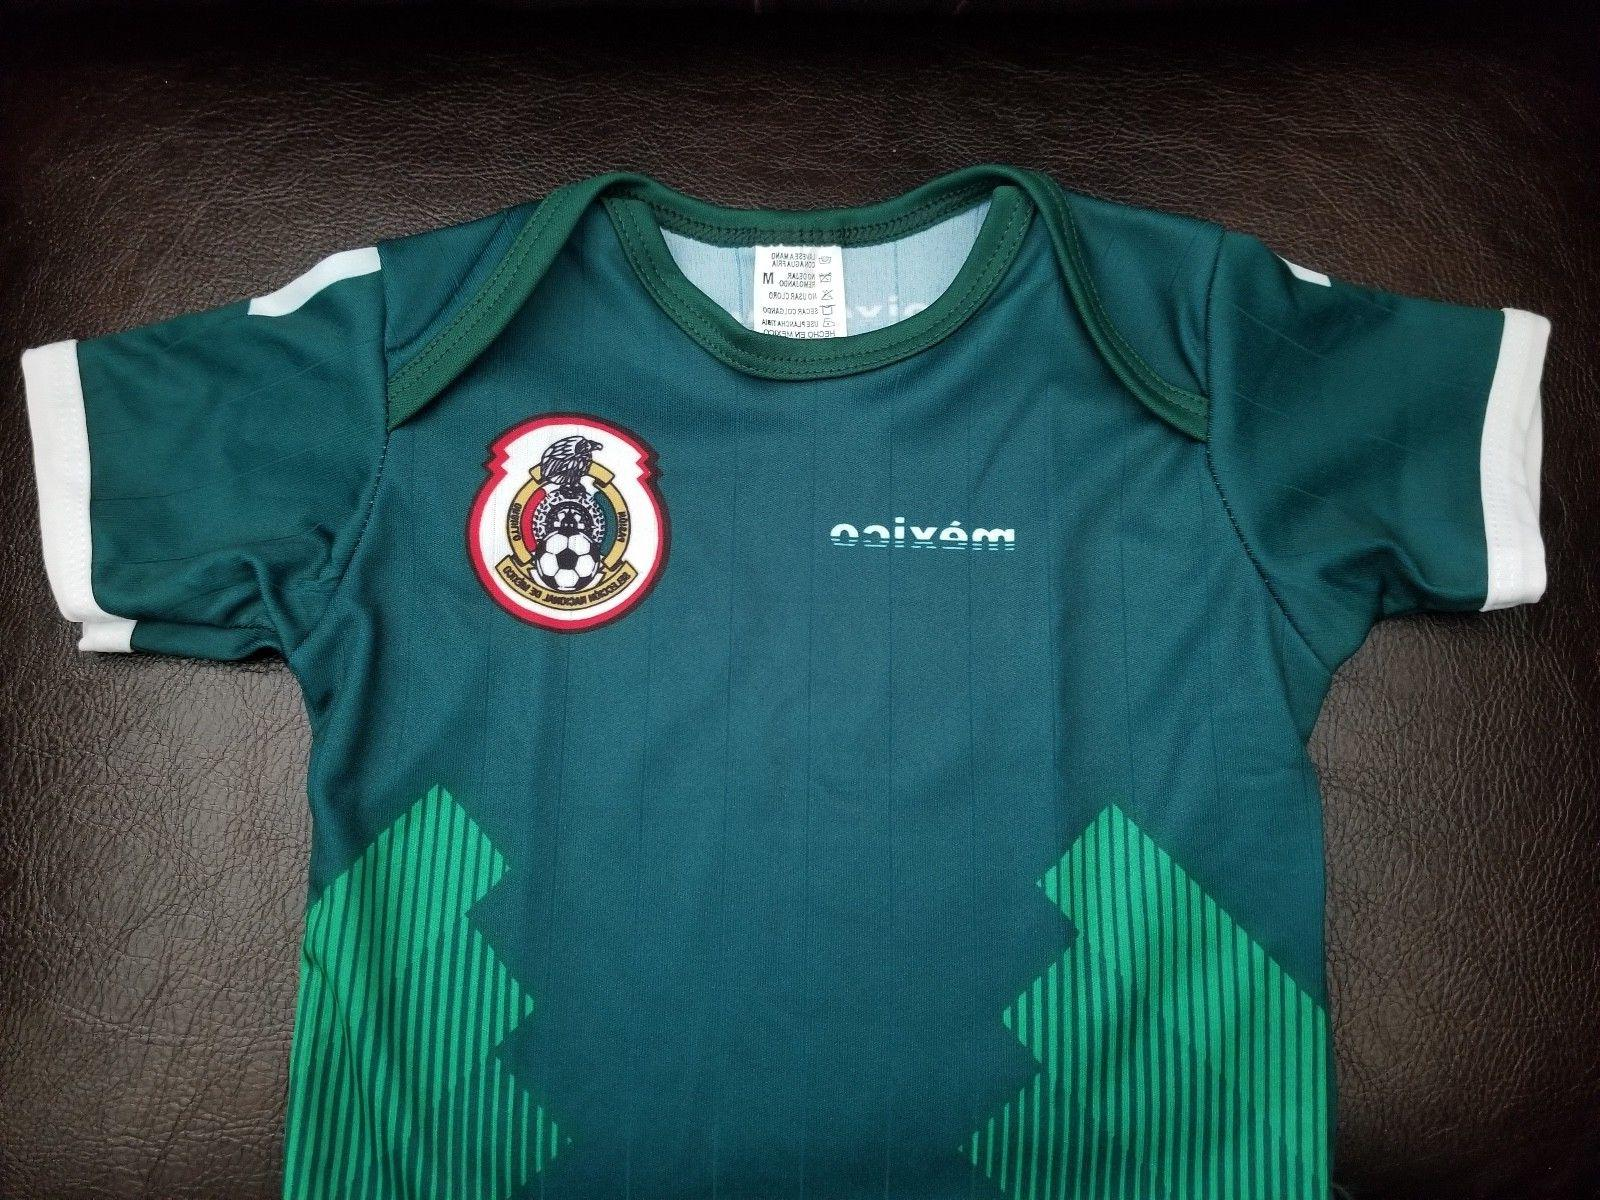 Green Mexico Soccer Jersey Pañalero 2018 World Cup Home